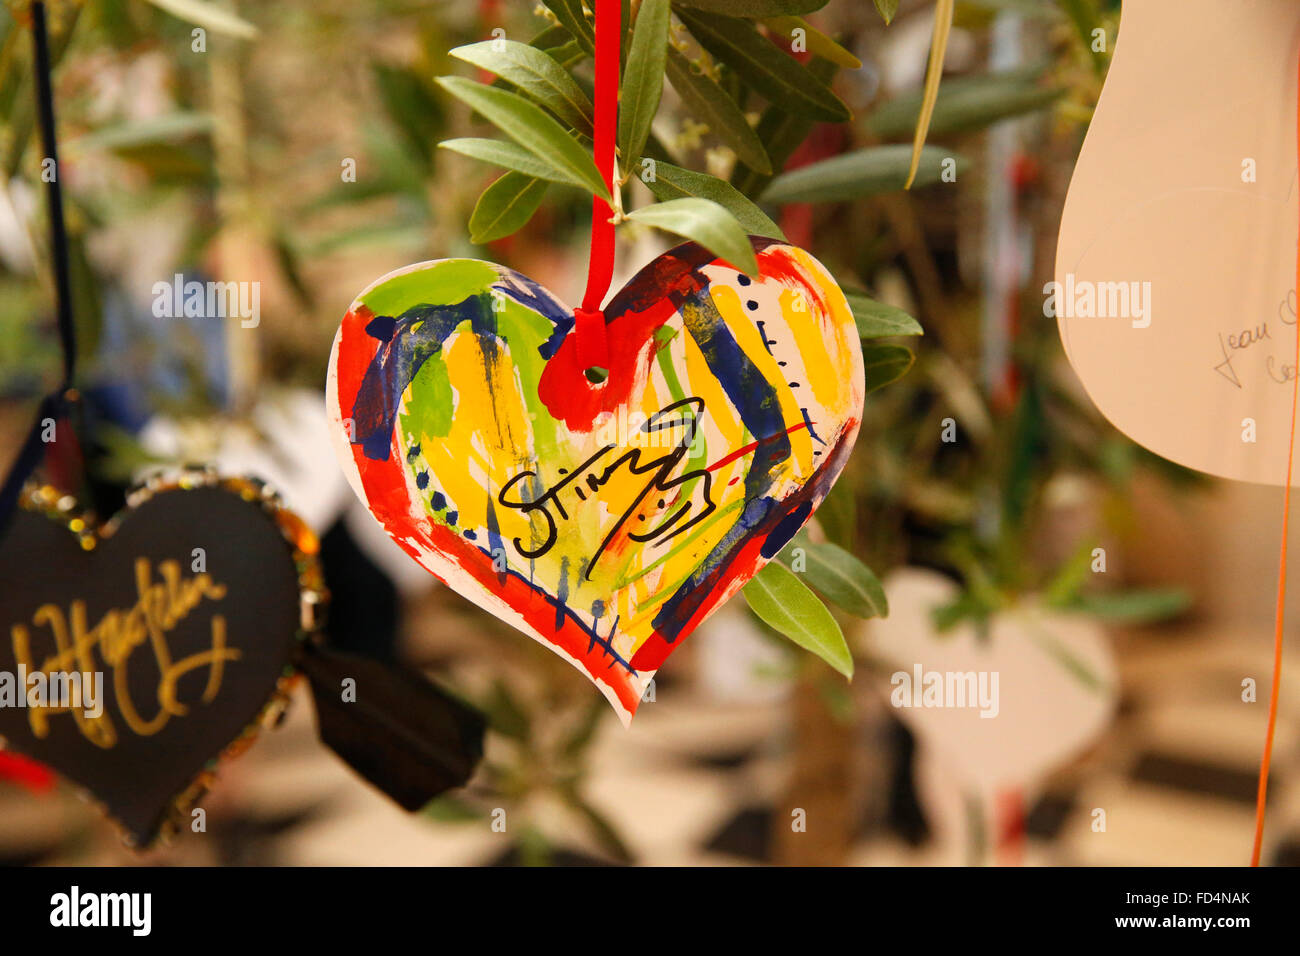 Heart signed by Sting. - Stock Image